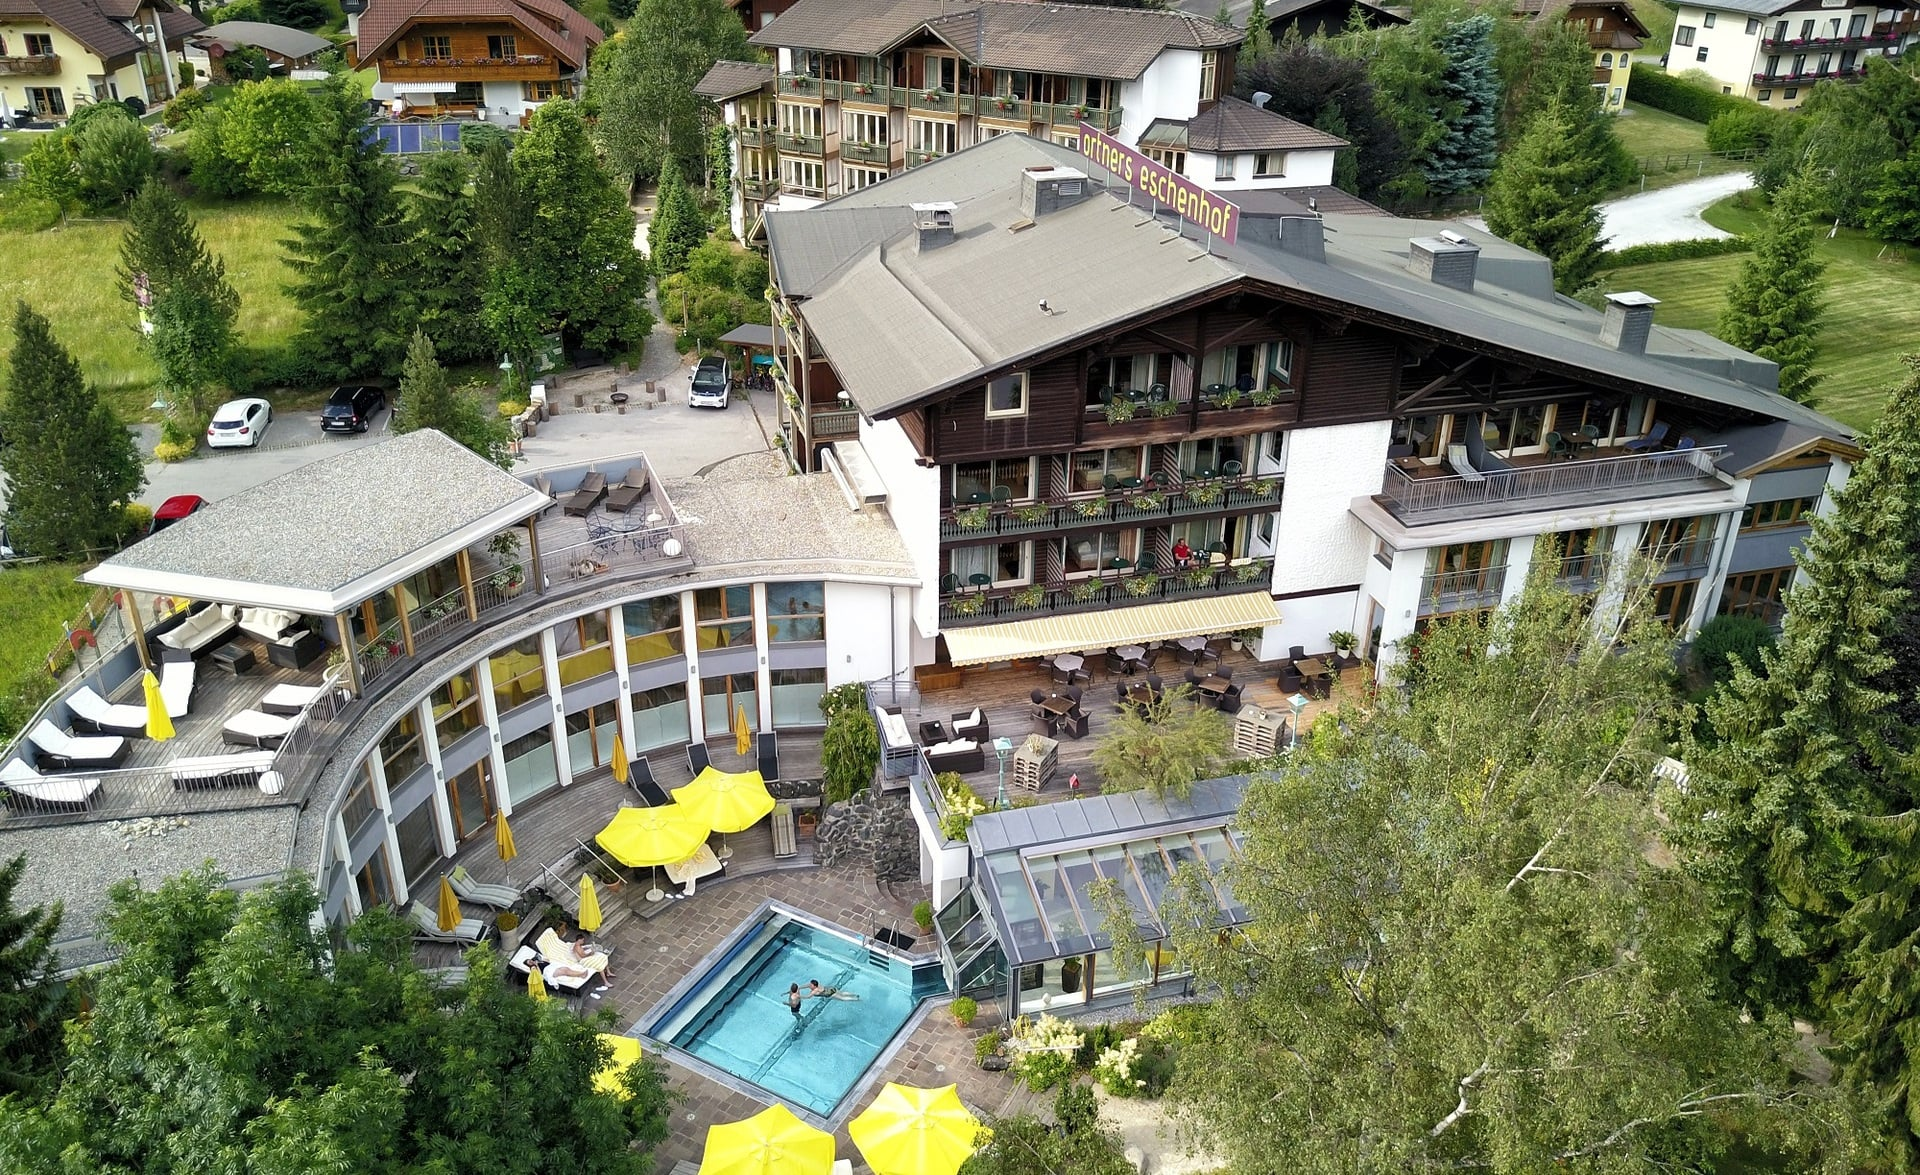 Feeling nature: My Hotel in Bad Kleinkirchheim in Carinthia